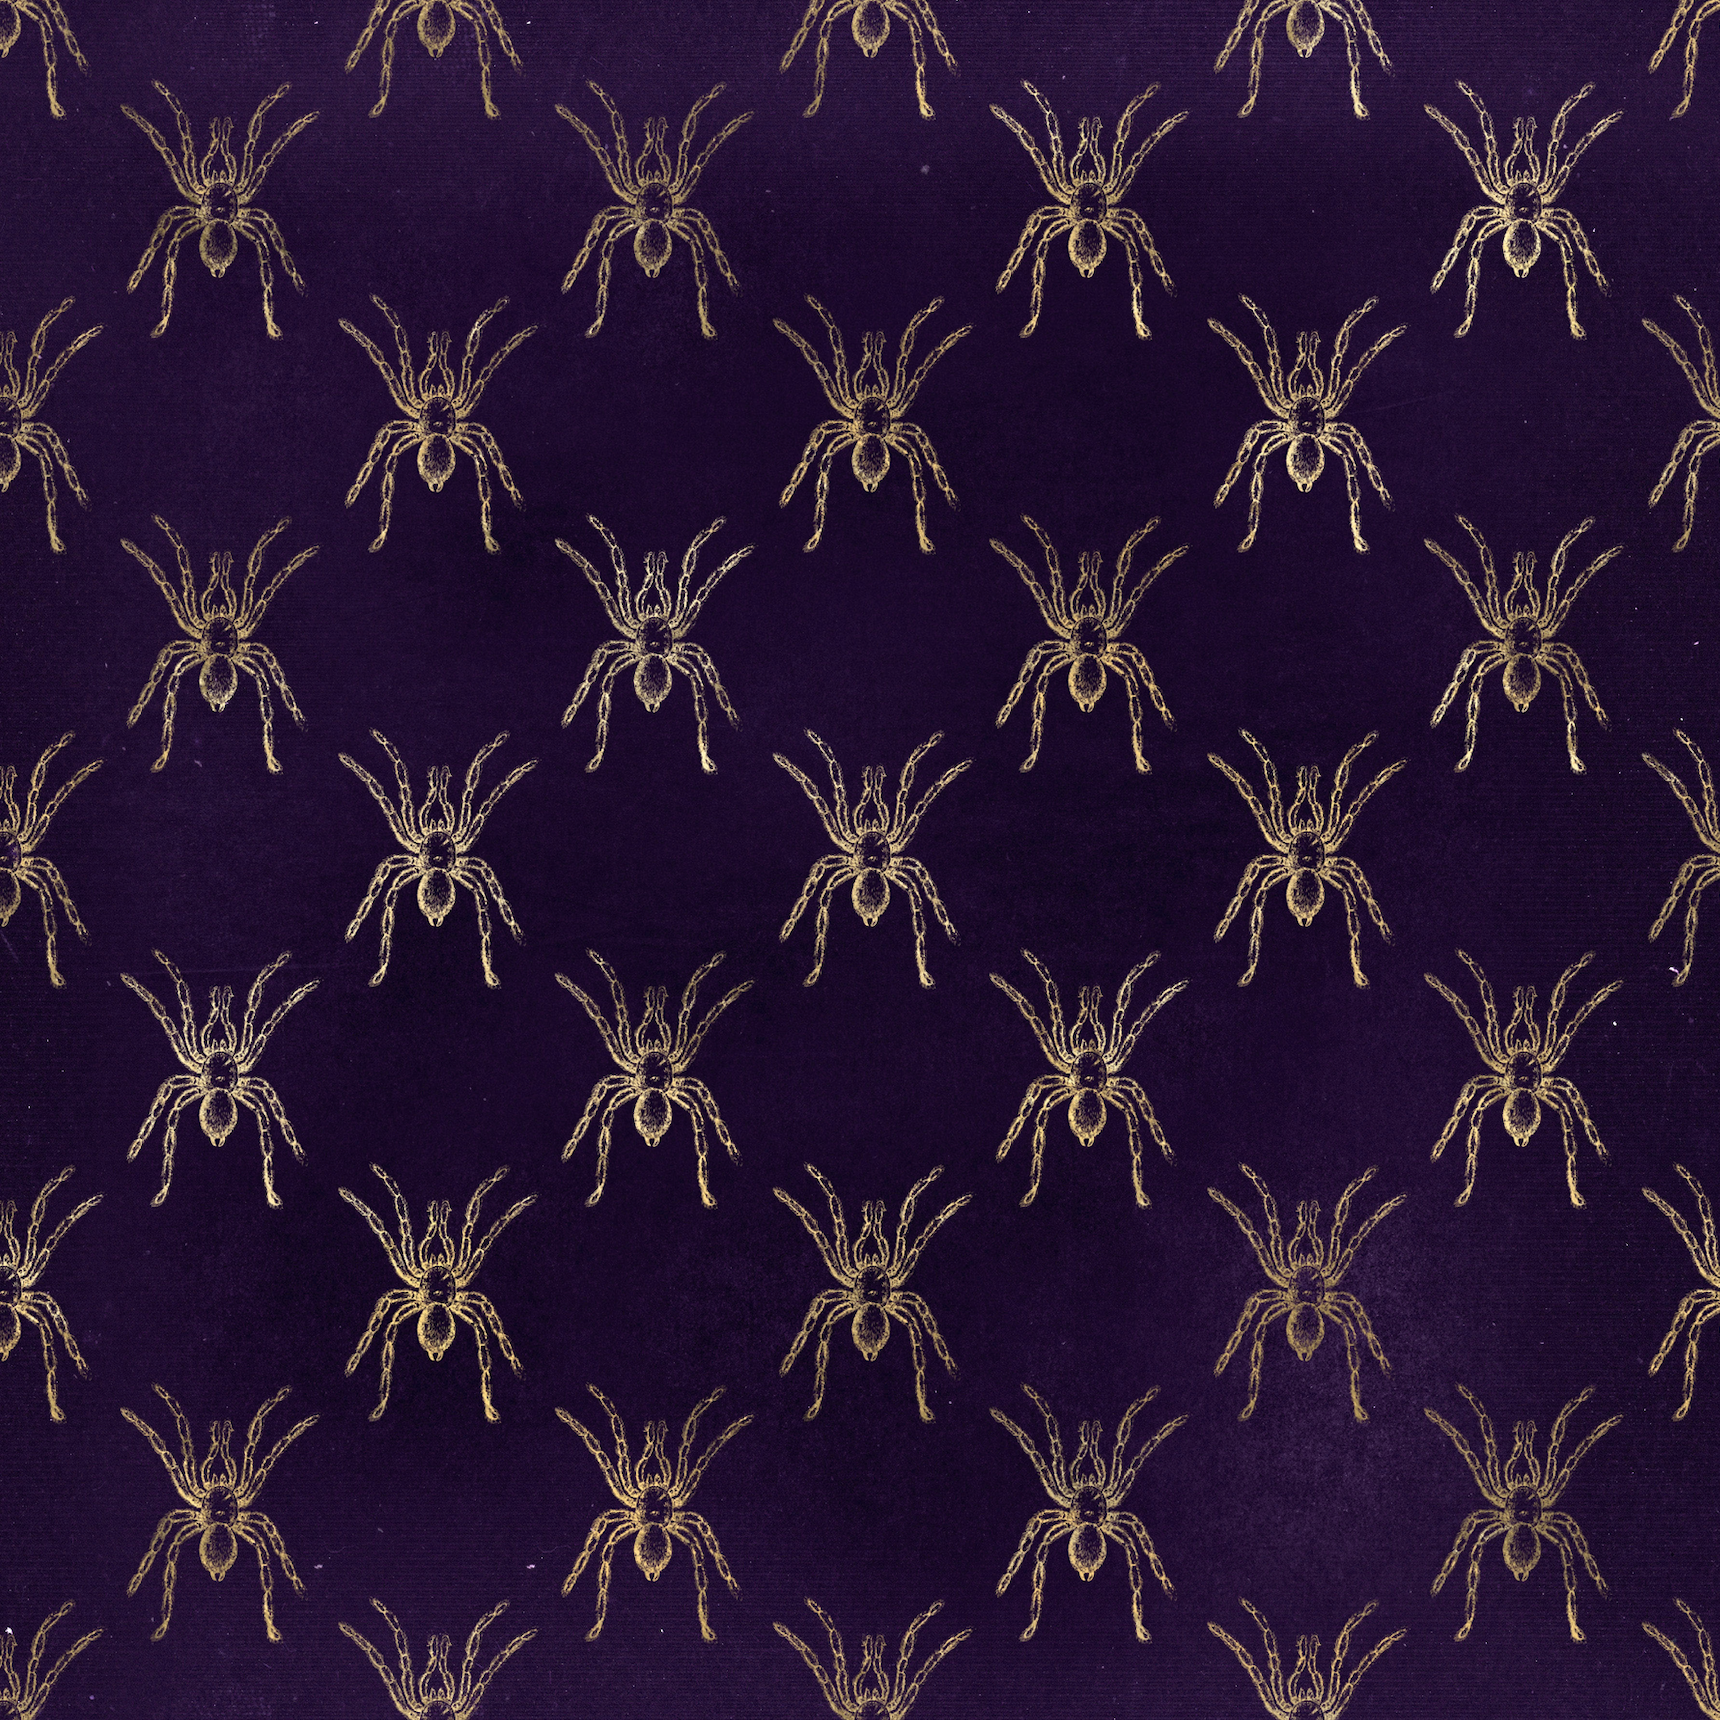 Halloween Costume - Arachnophobia - Gold spider print on distressed purple - Bodysuit